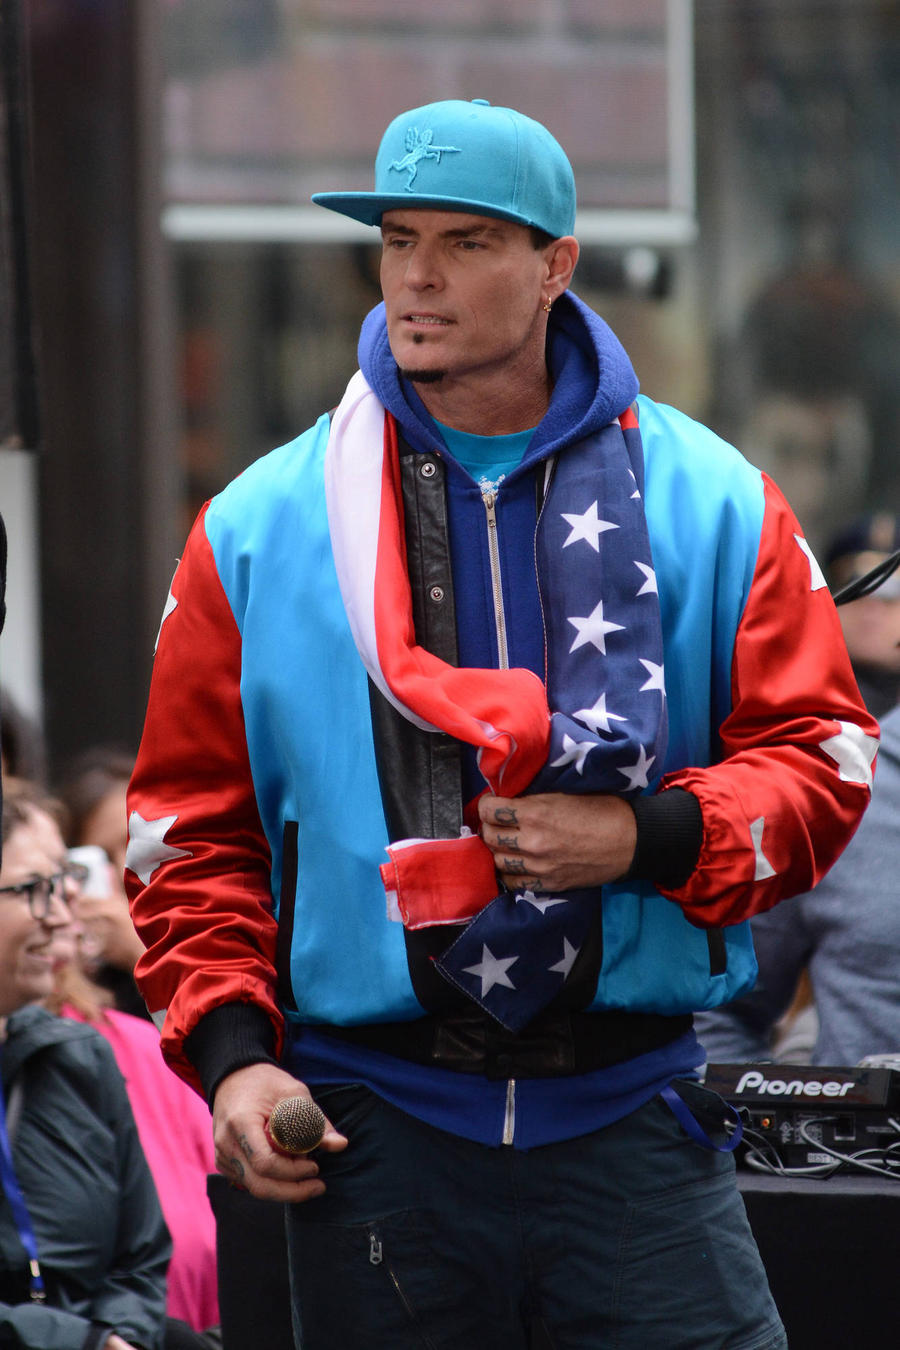 Vanilla Ice Apologises For Foulmouthed Rant After Missing Plane